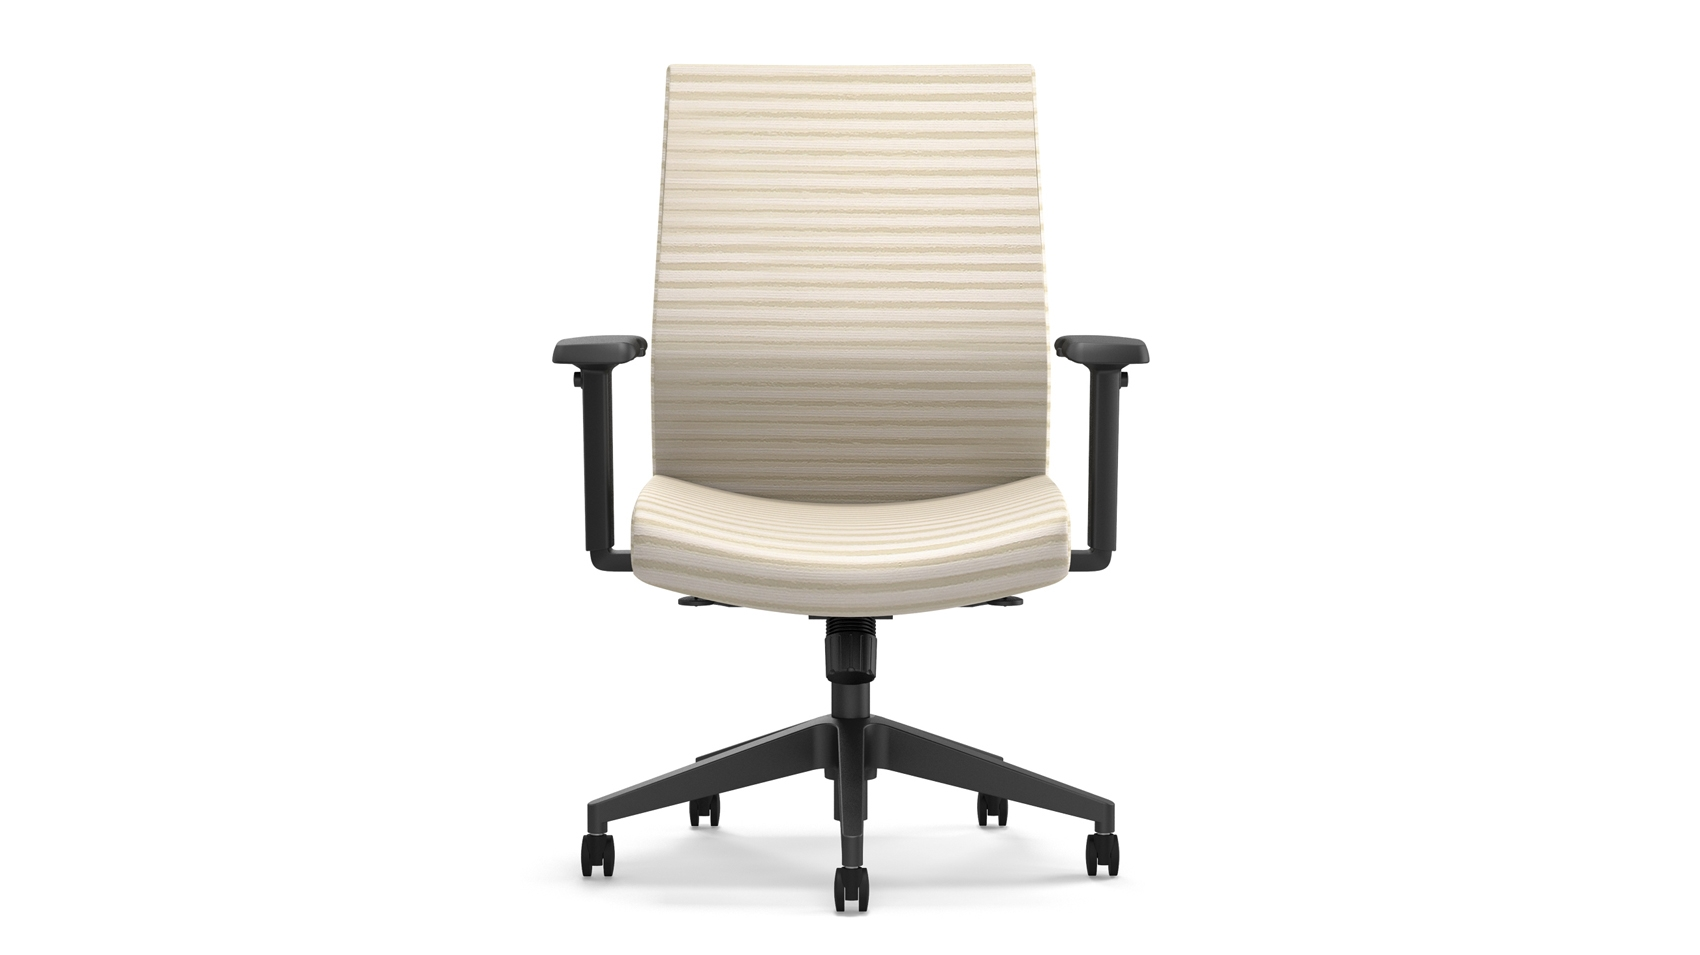 Highmark Revel High Back Office Chair - Better Model